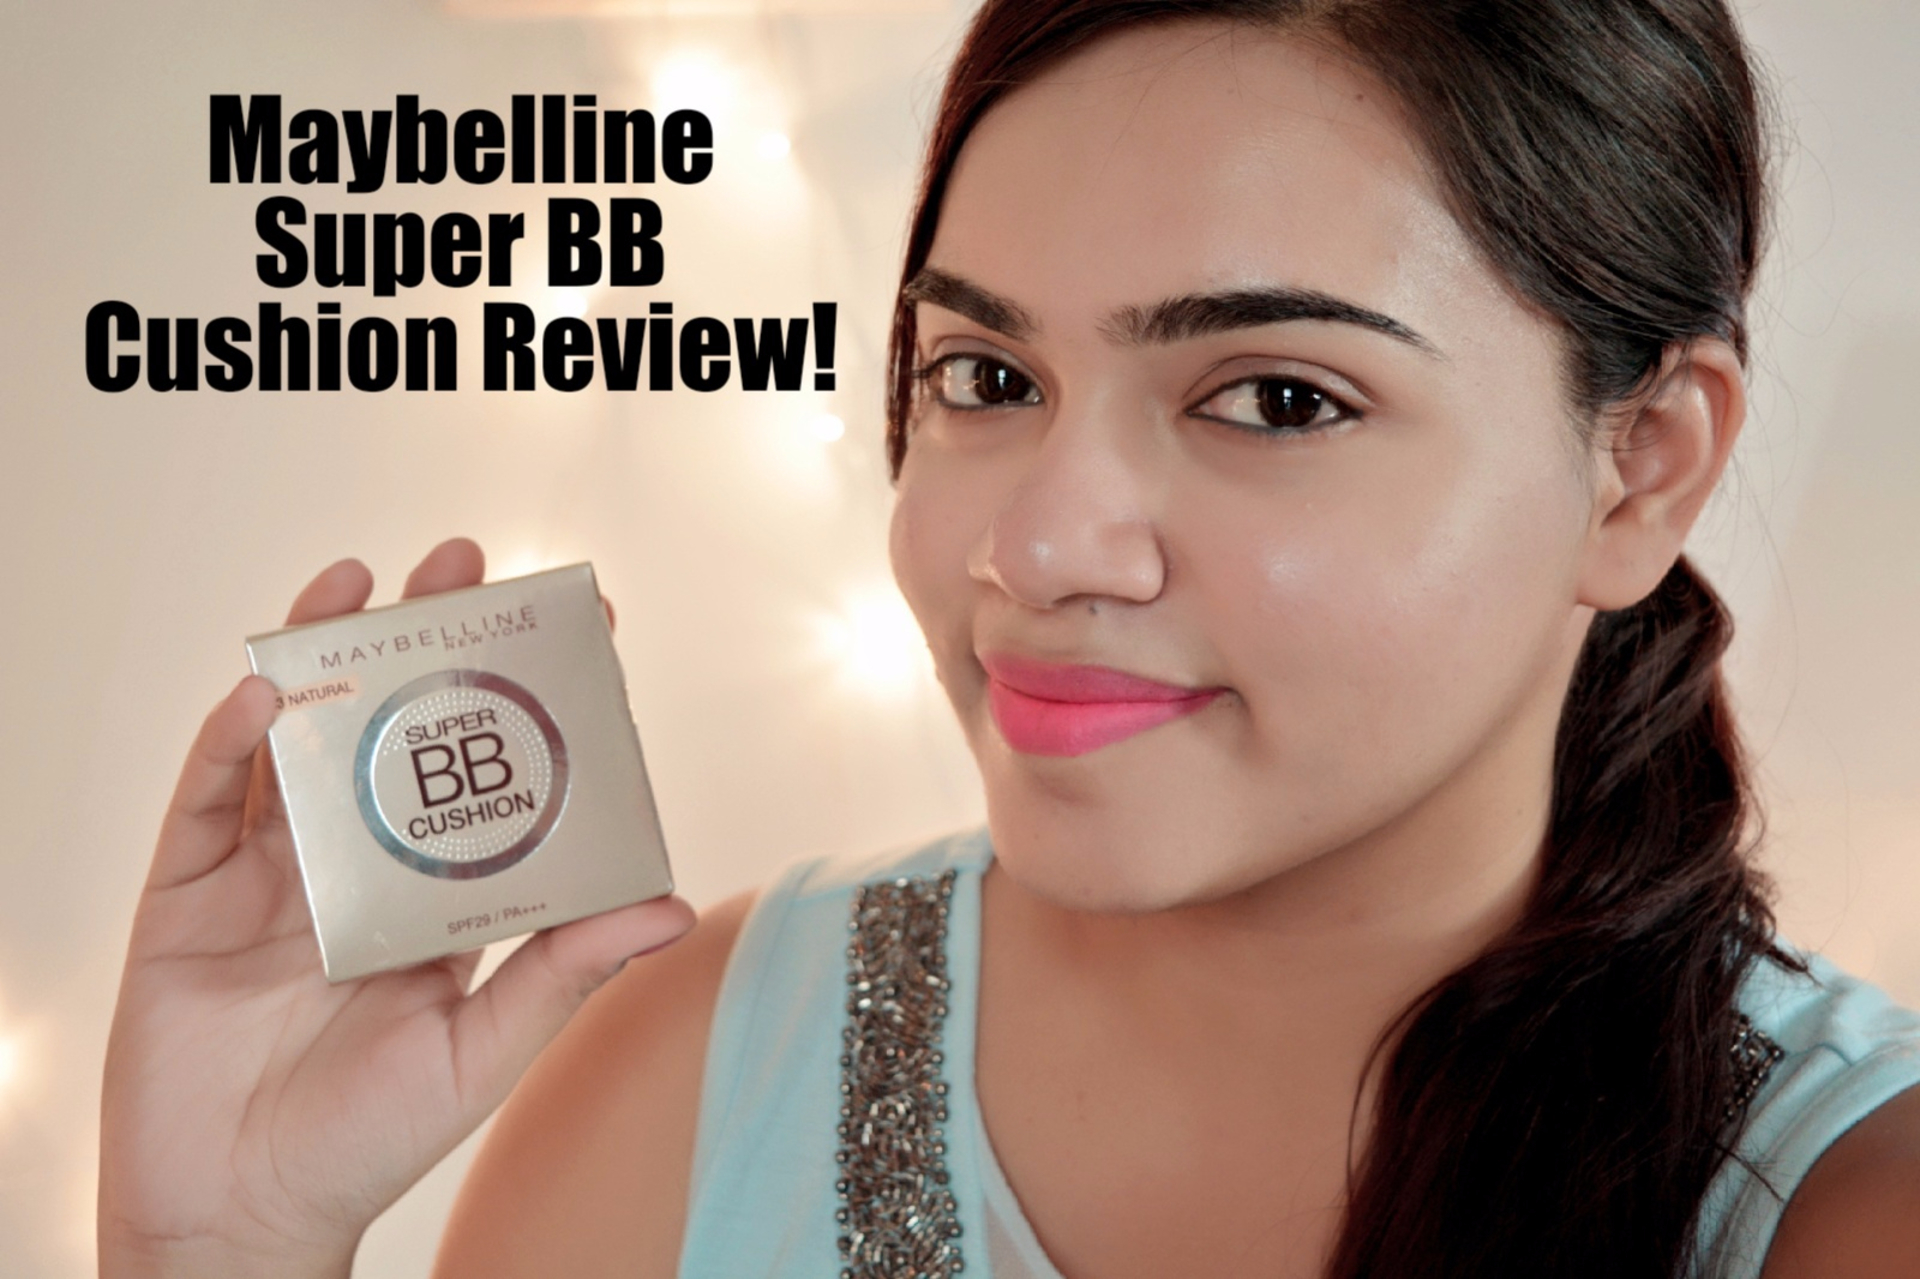 Maybelline New York Super BB Cushion Review image